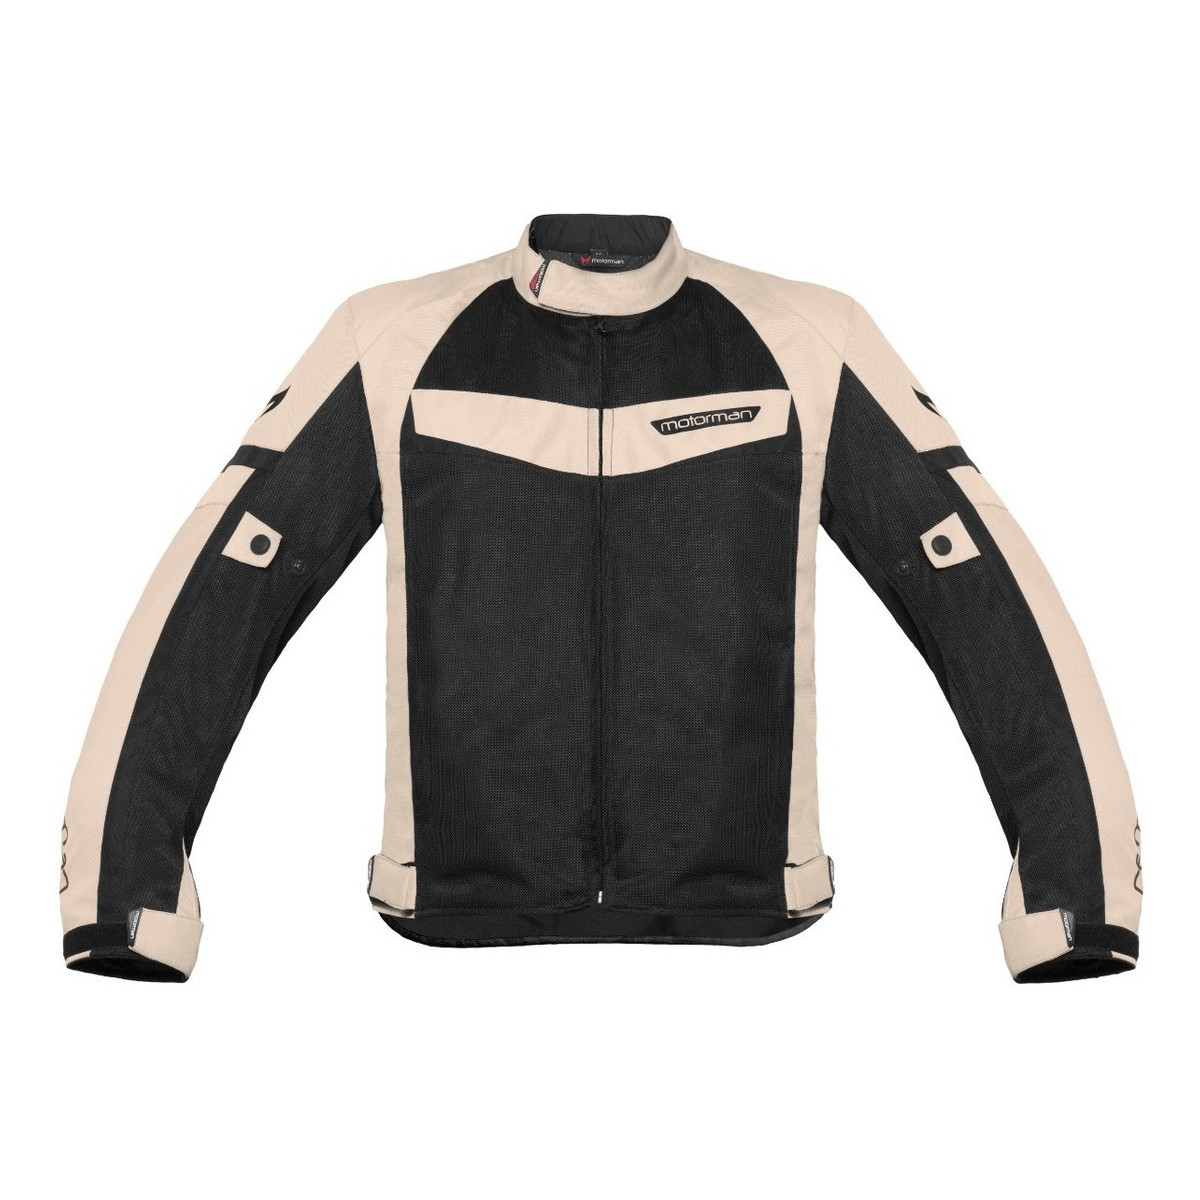 Campera Motorman Evo Air Proteccion Negro Sand